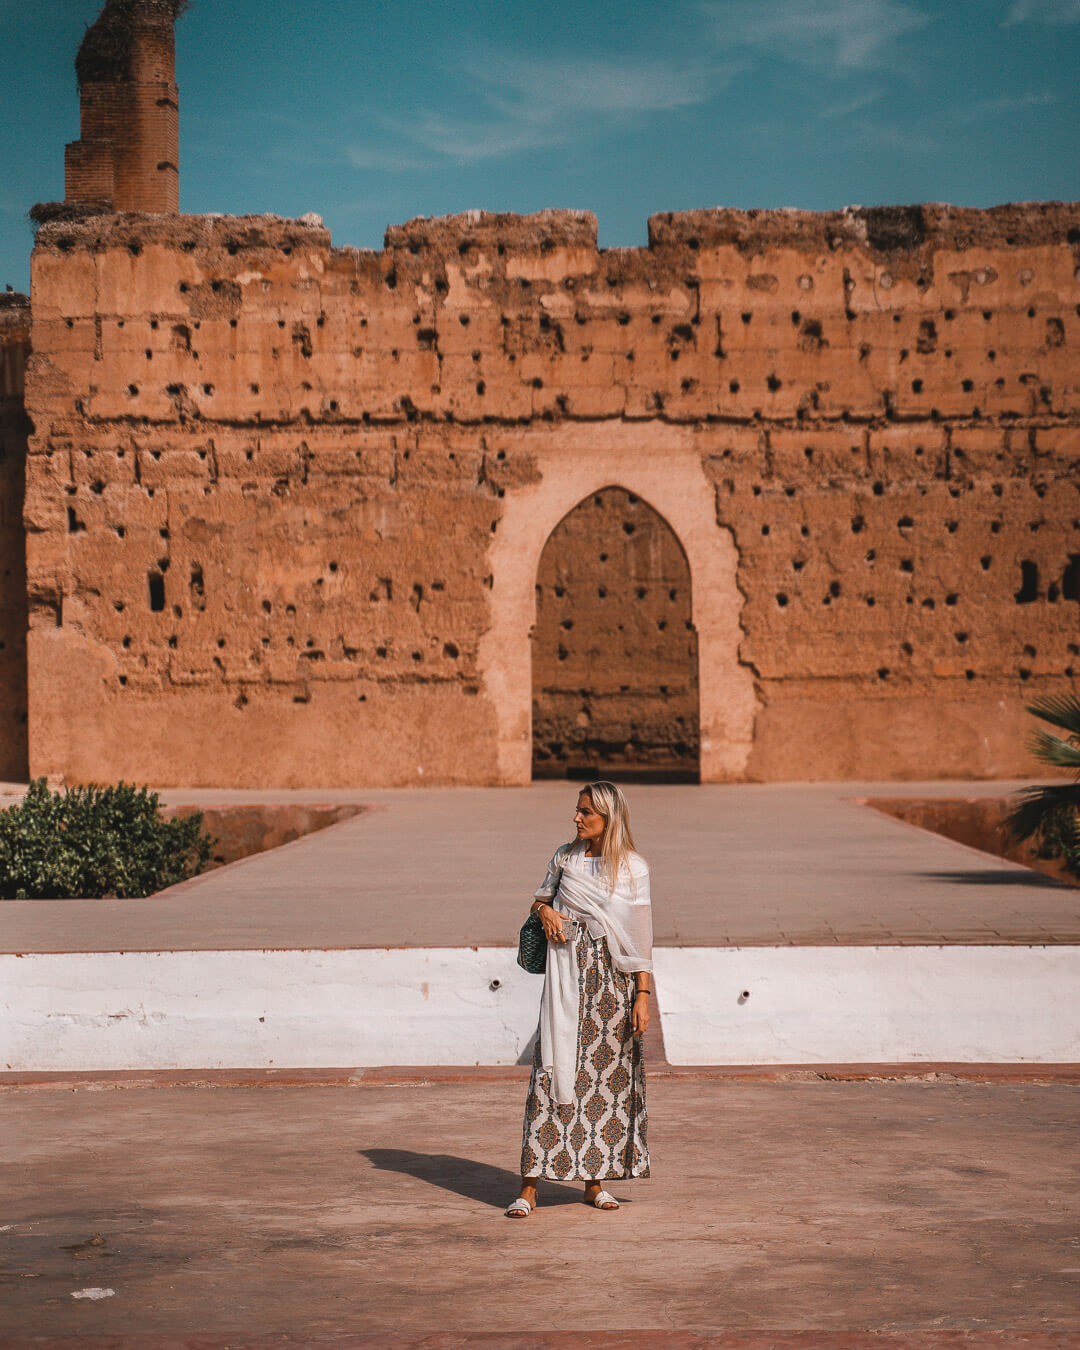 EL BADII PALACE - TOP 10 THINGS TO DO IN MARRAKECH